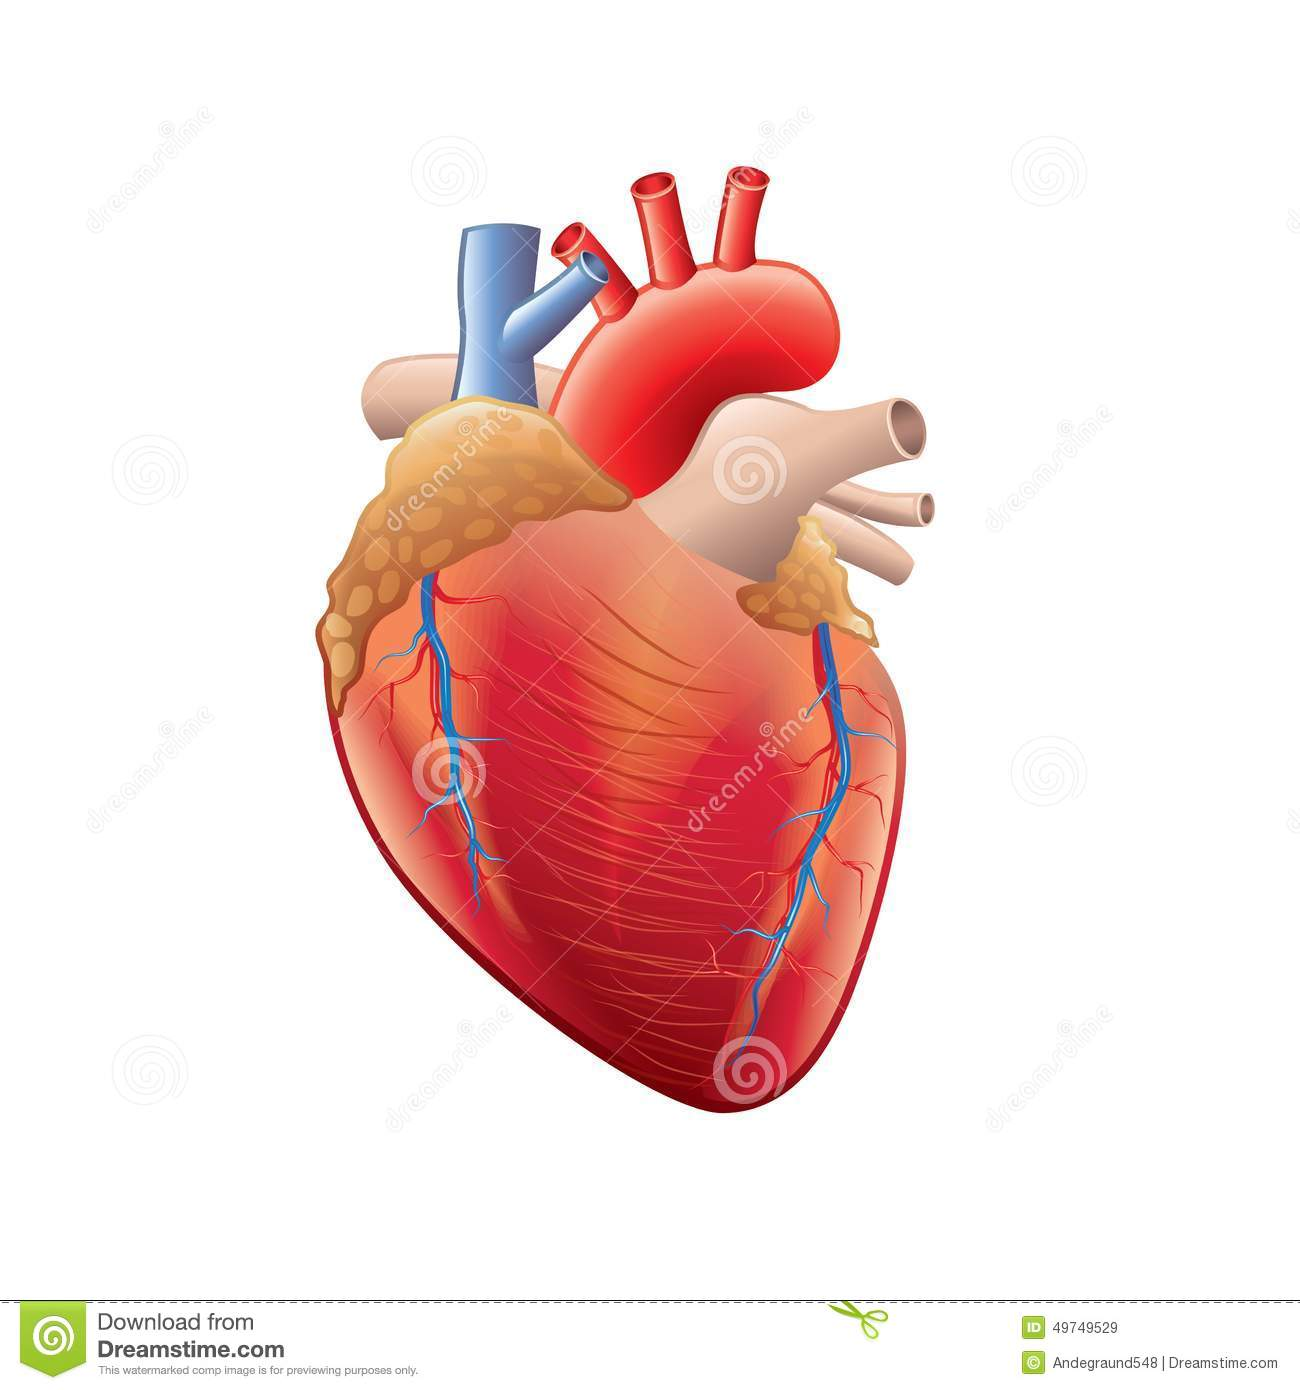 Human Heart Anatomy Isolated On White Vector Stock Vector - Image ...